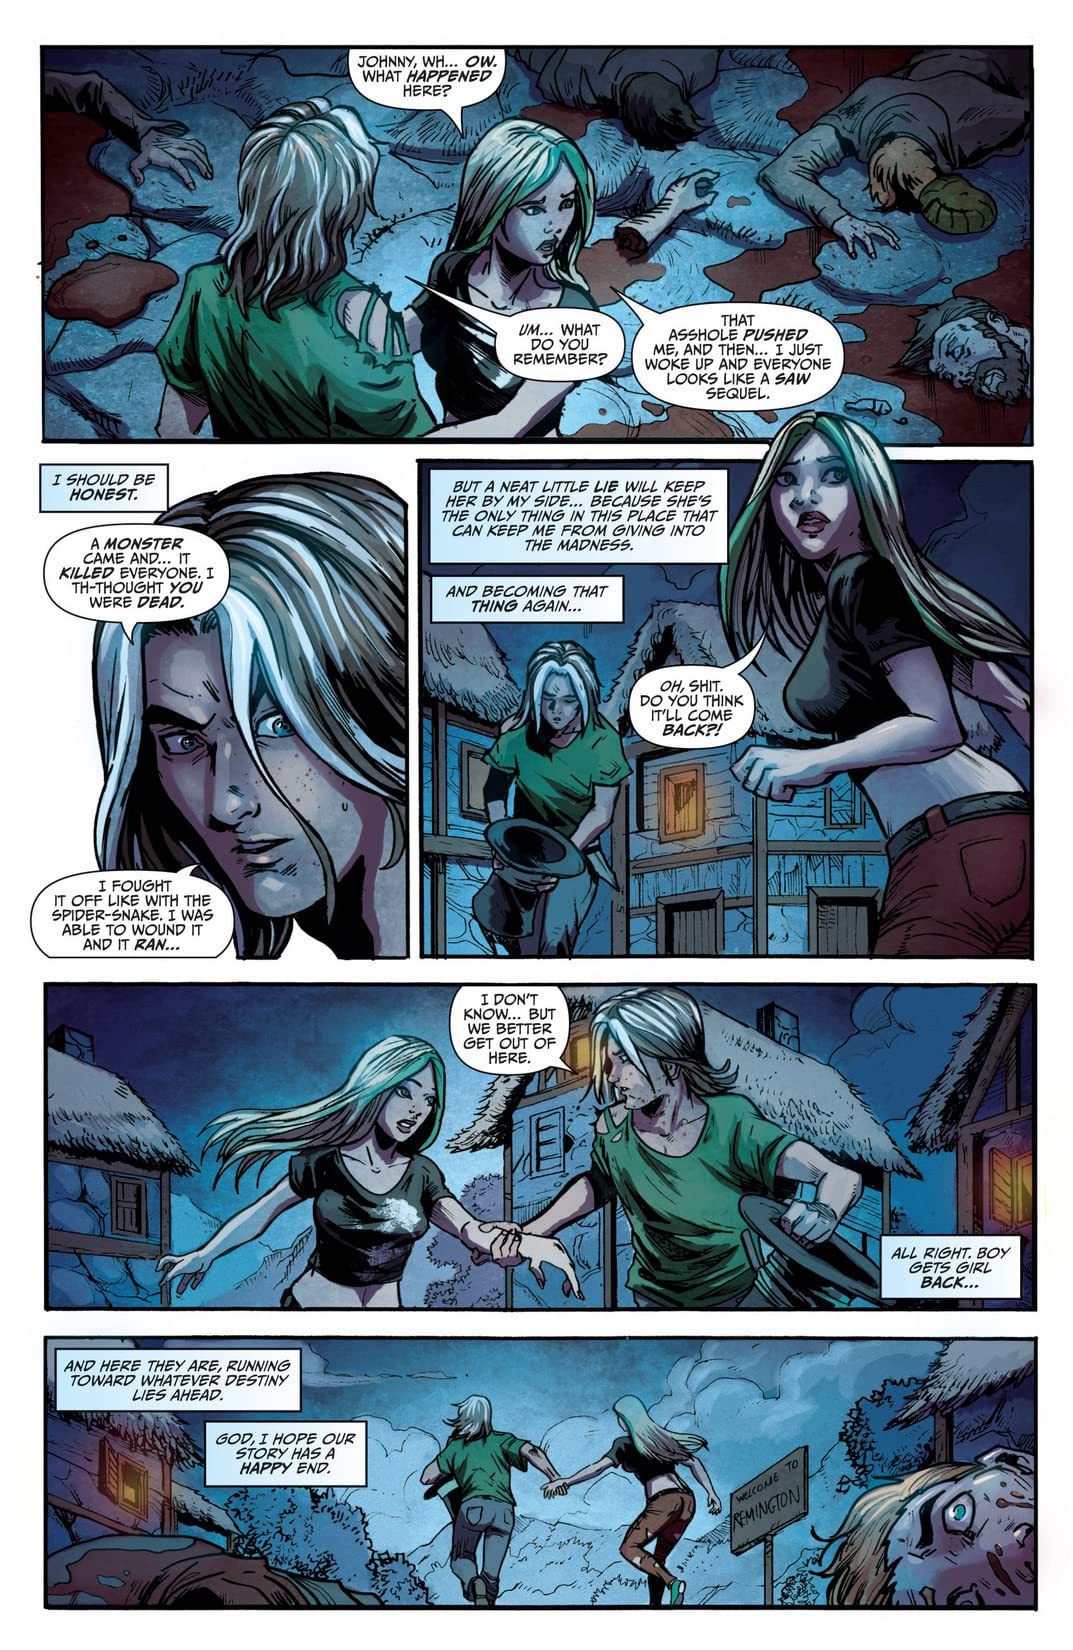 Wonderland: Through the Looking Glass #5 (of 5)